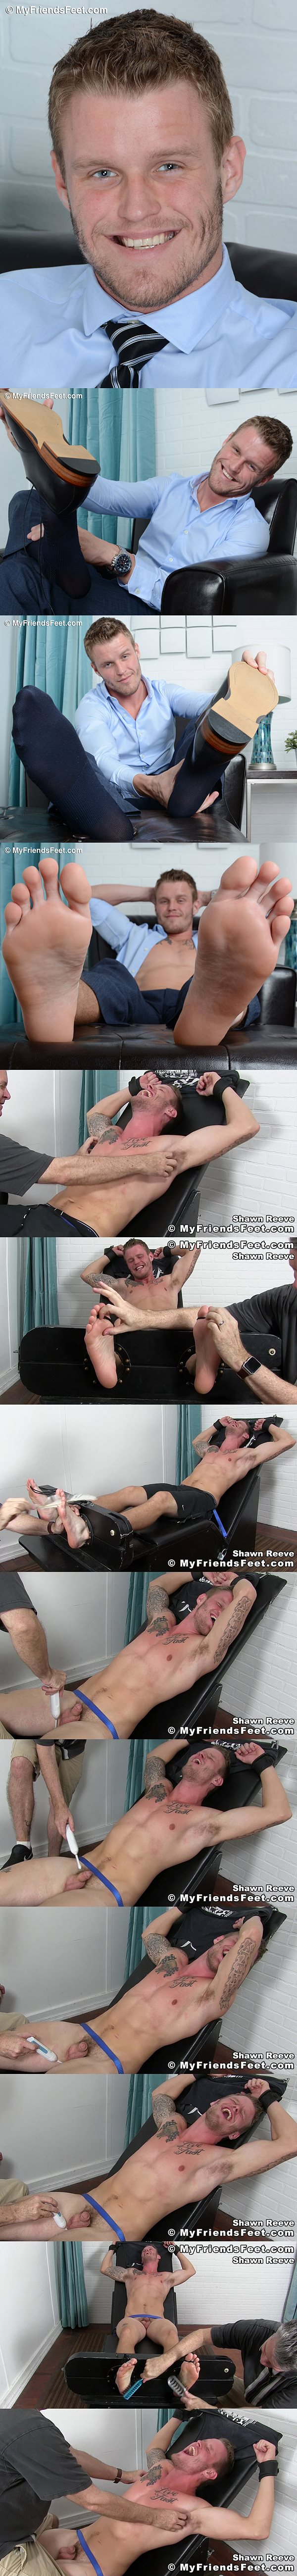 Handsome blond jock Shawn Reeve gets tied up and tickled naked at Myfriendsfeet 02